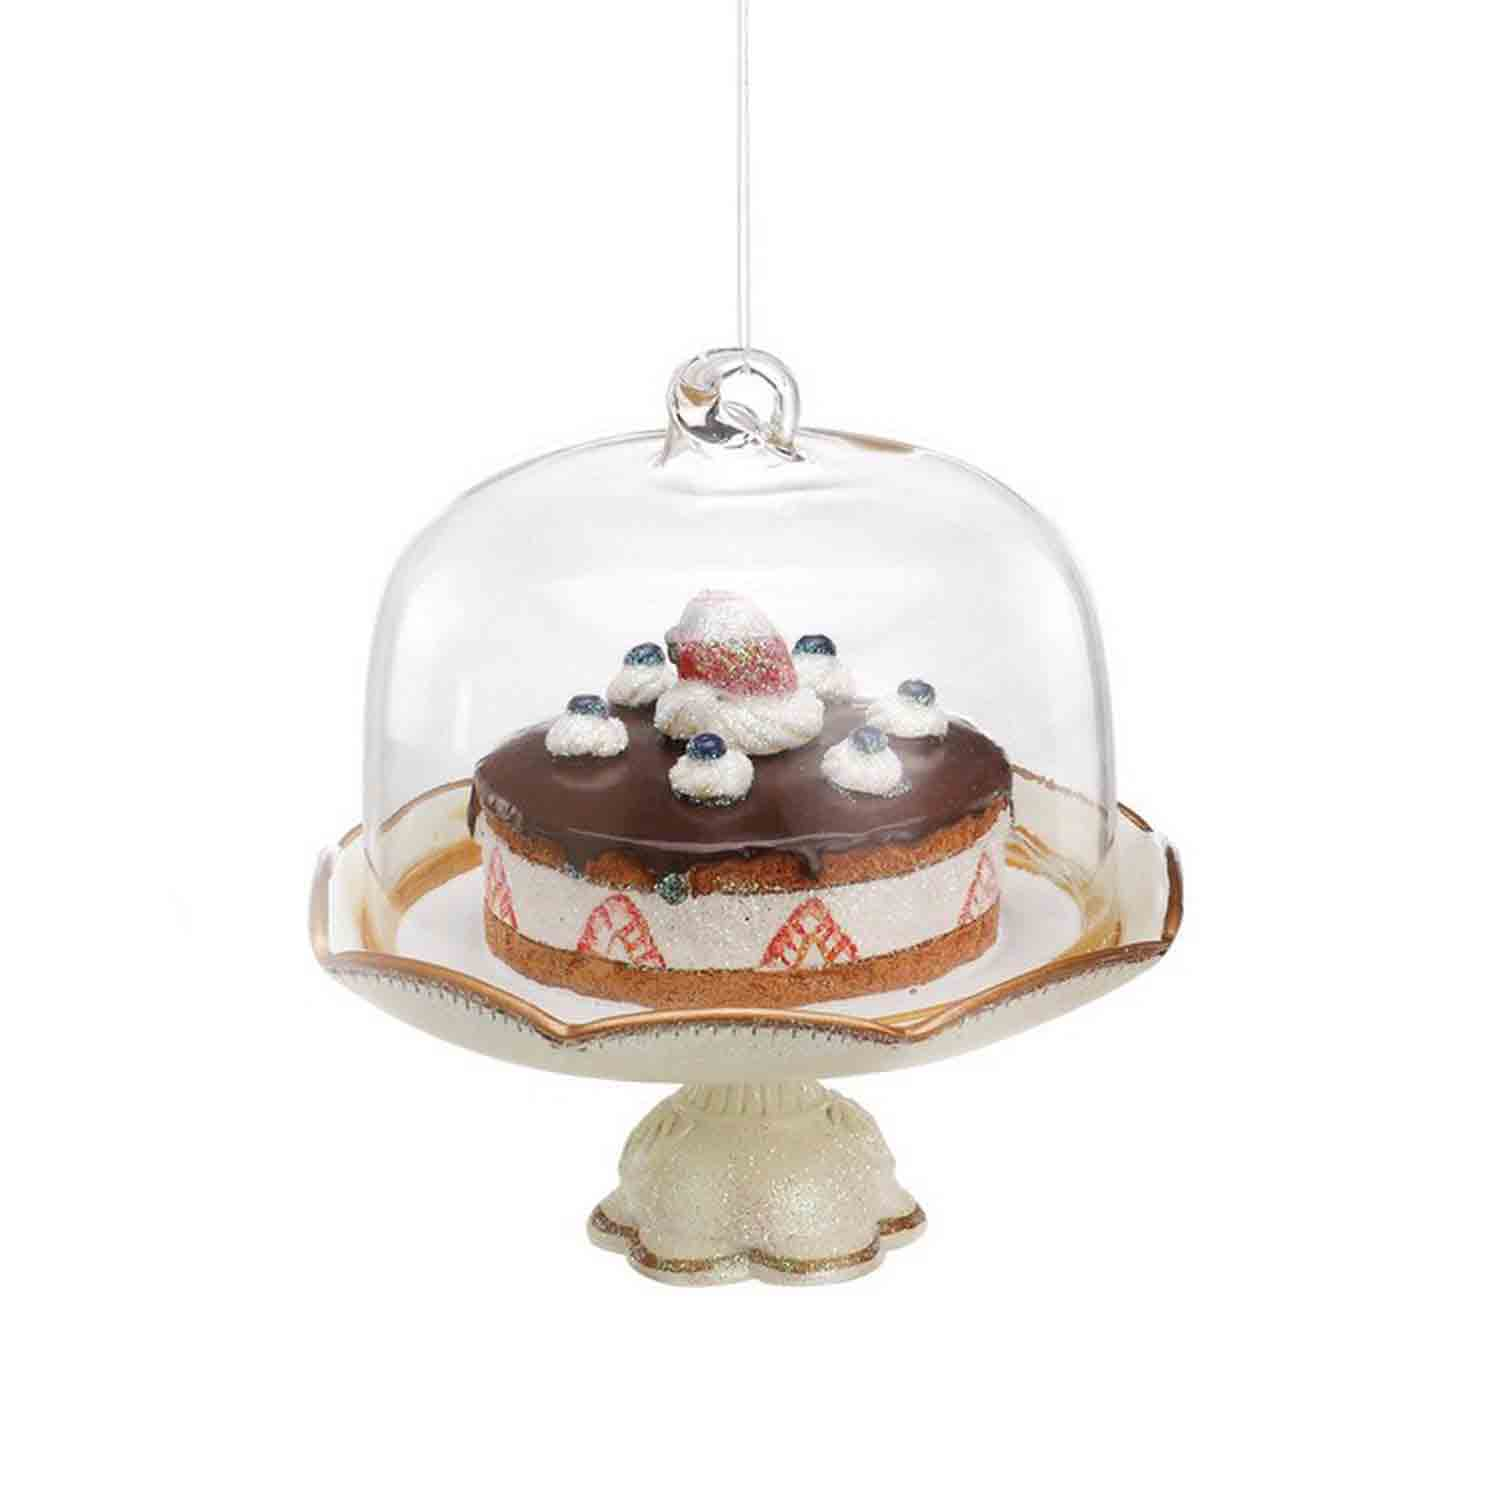 Cake On Pedestal Ornament